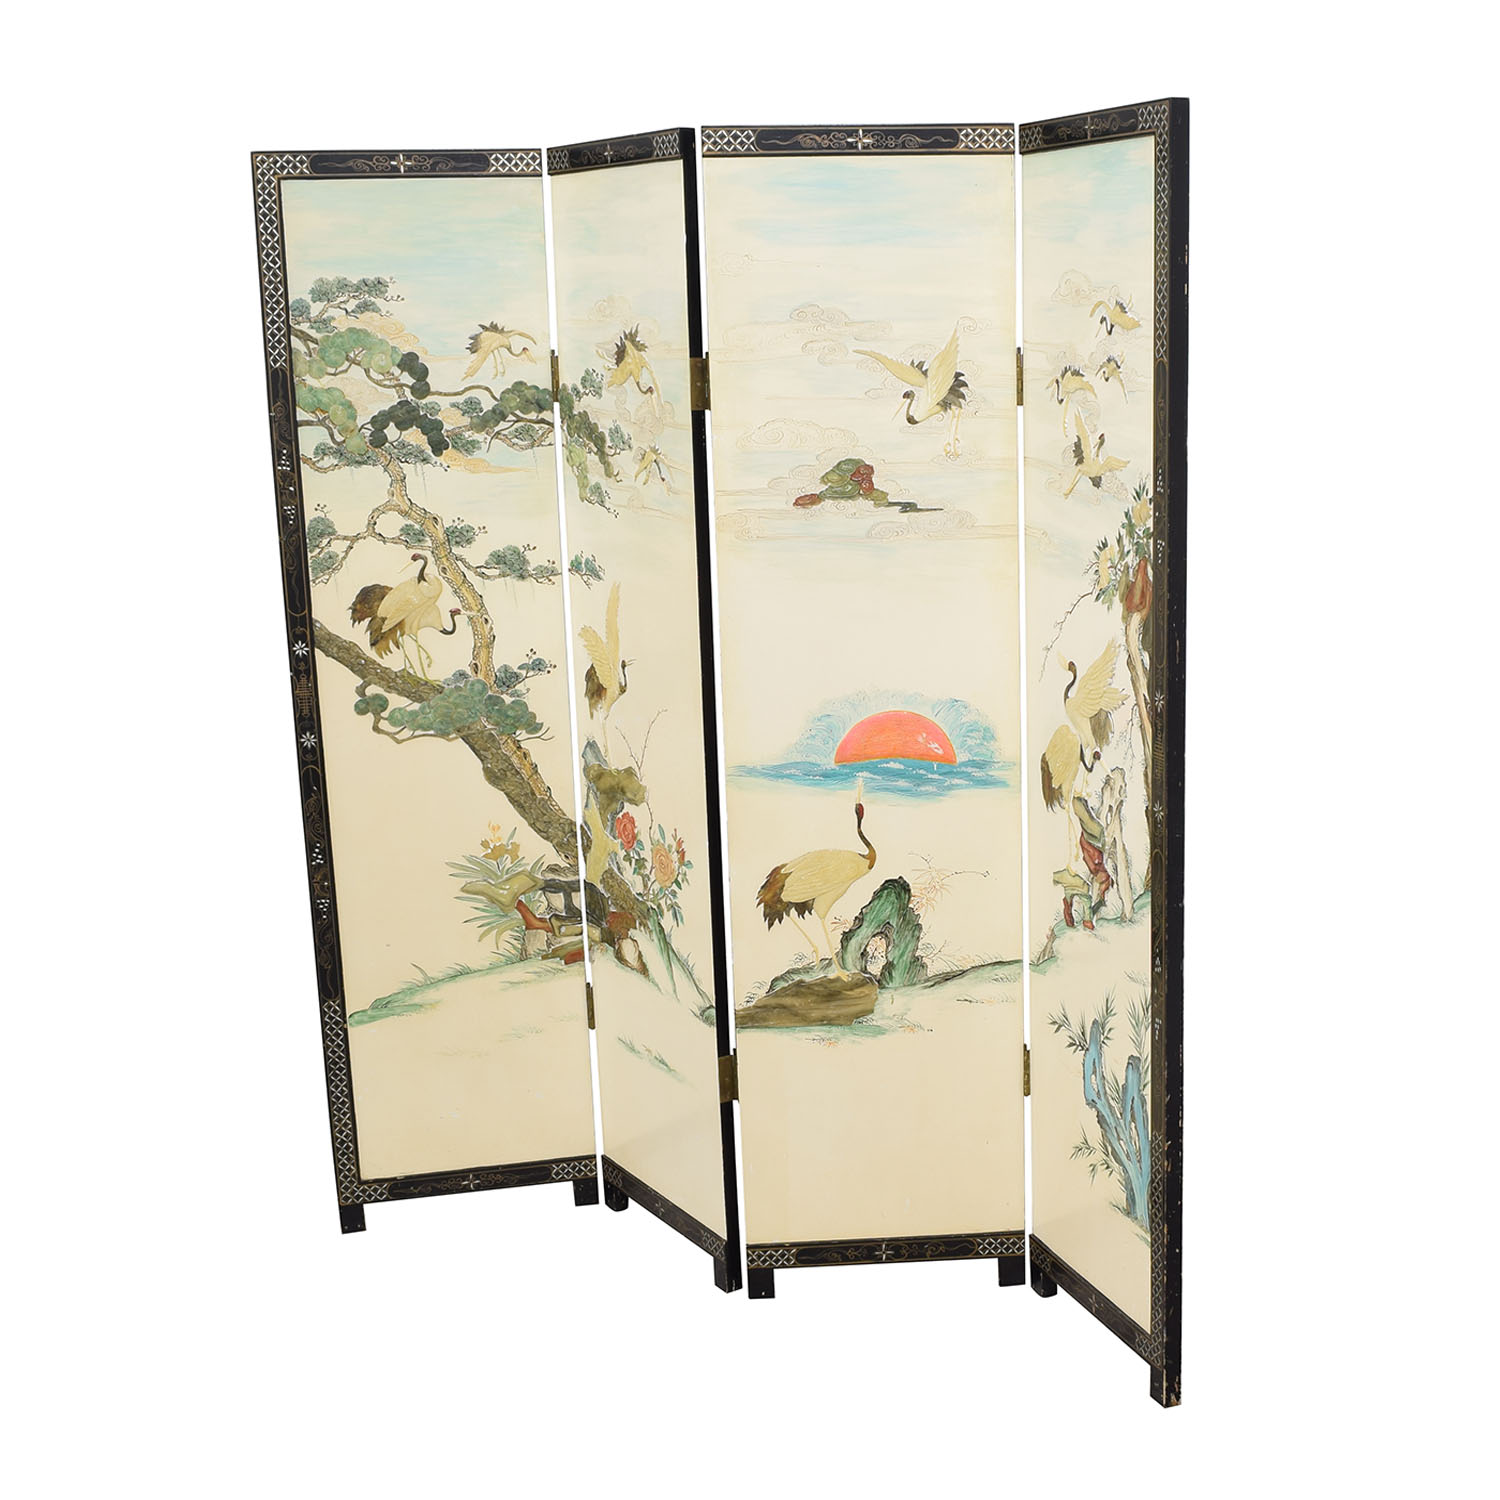 Chinese Style Panel Screen Divider dimensions